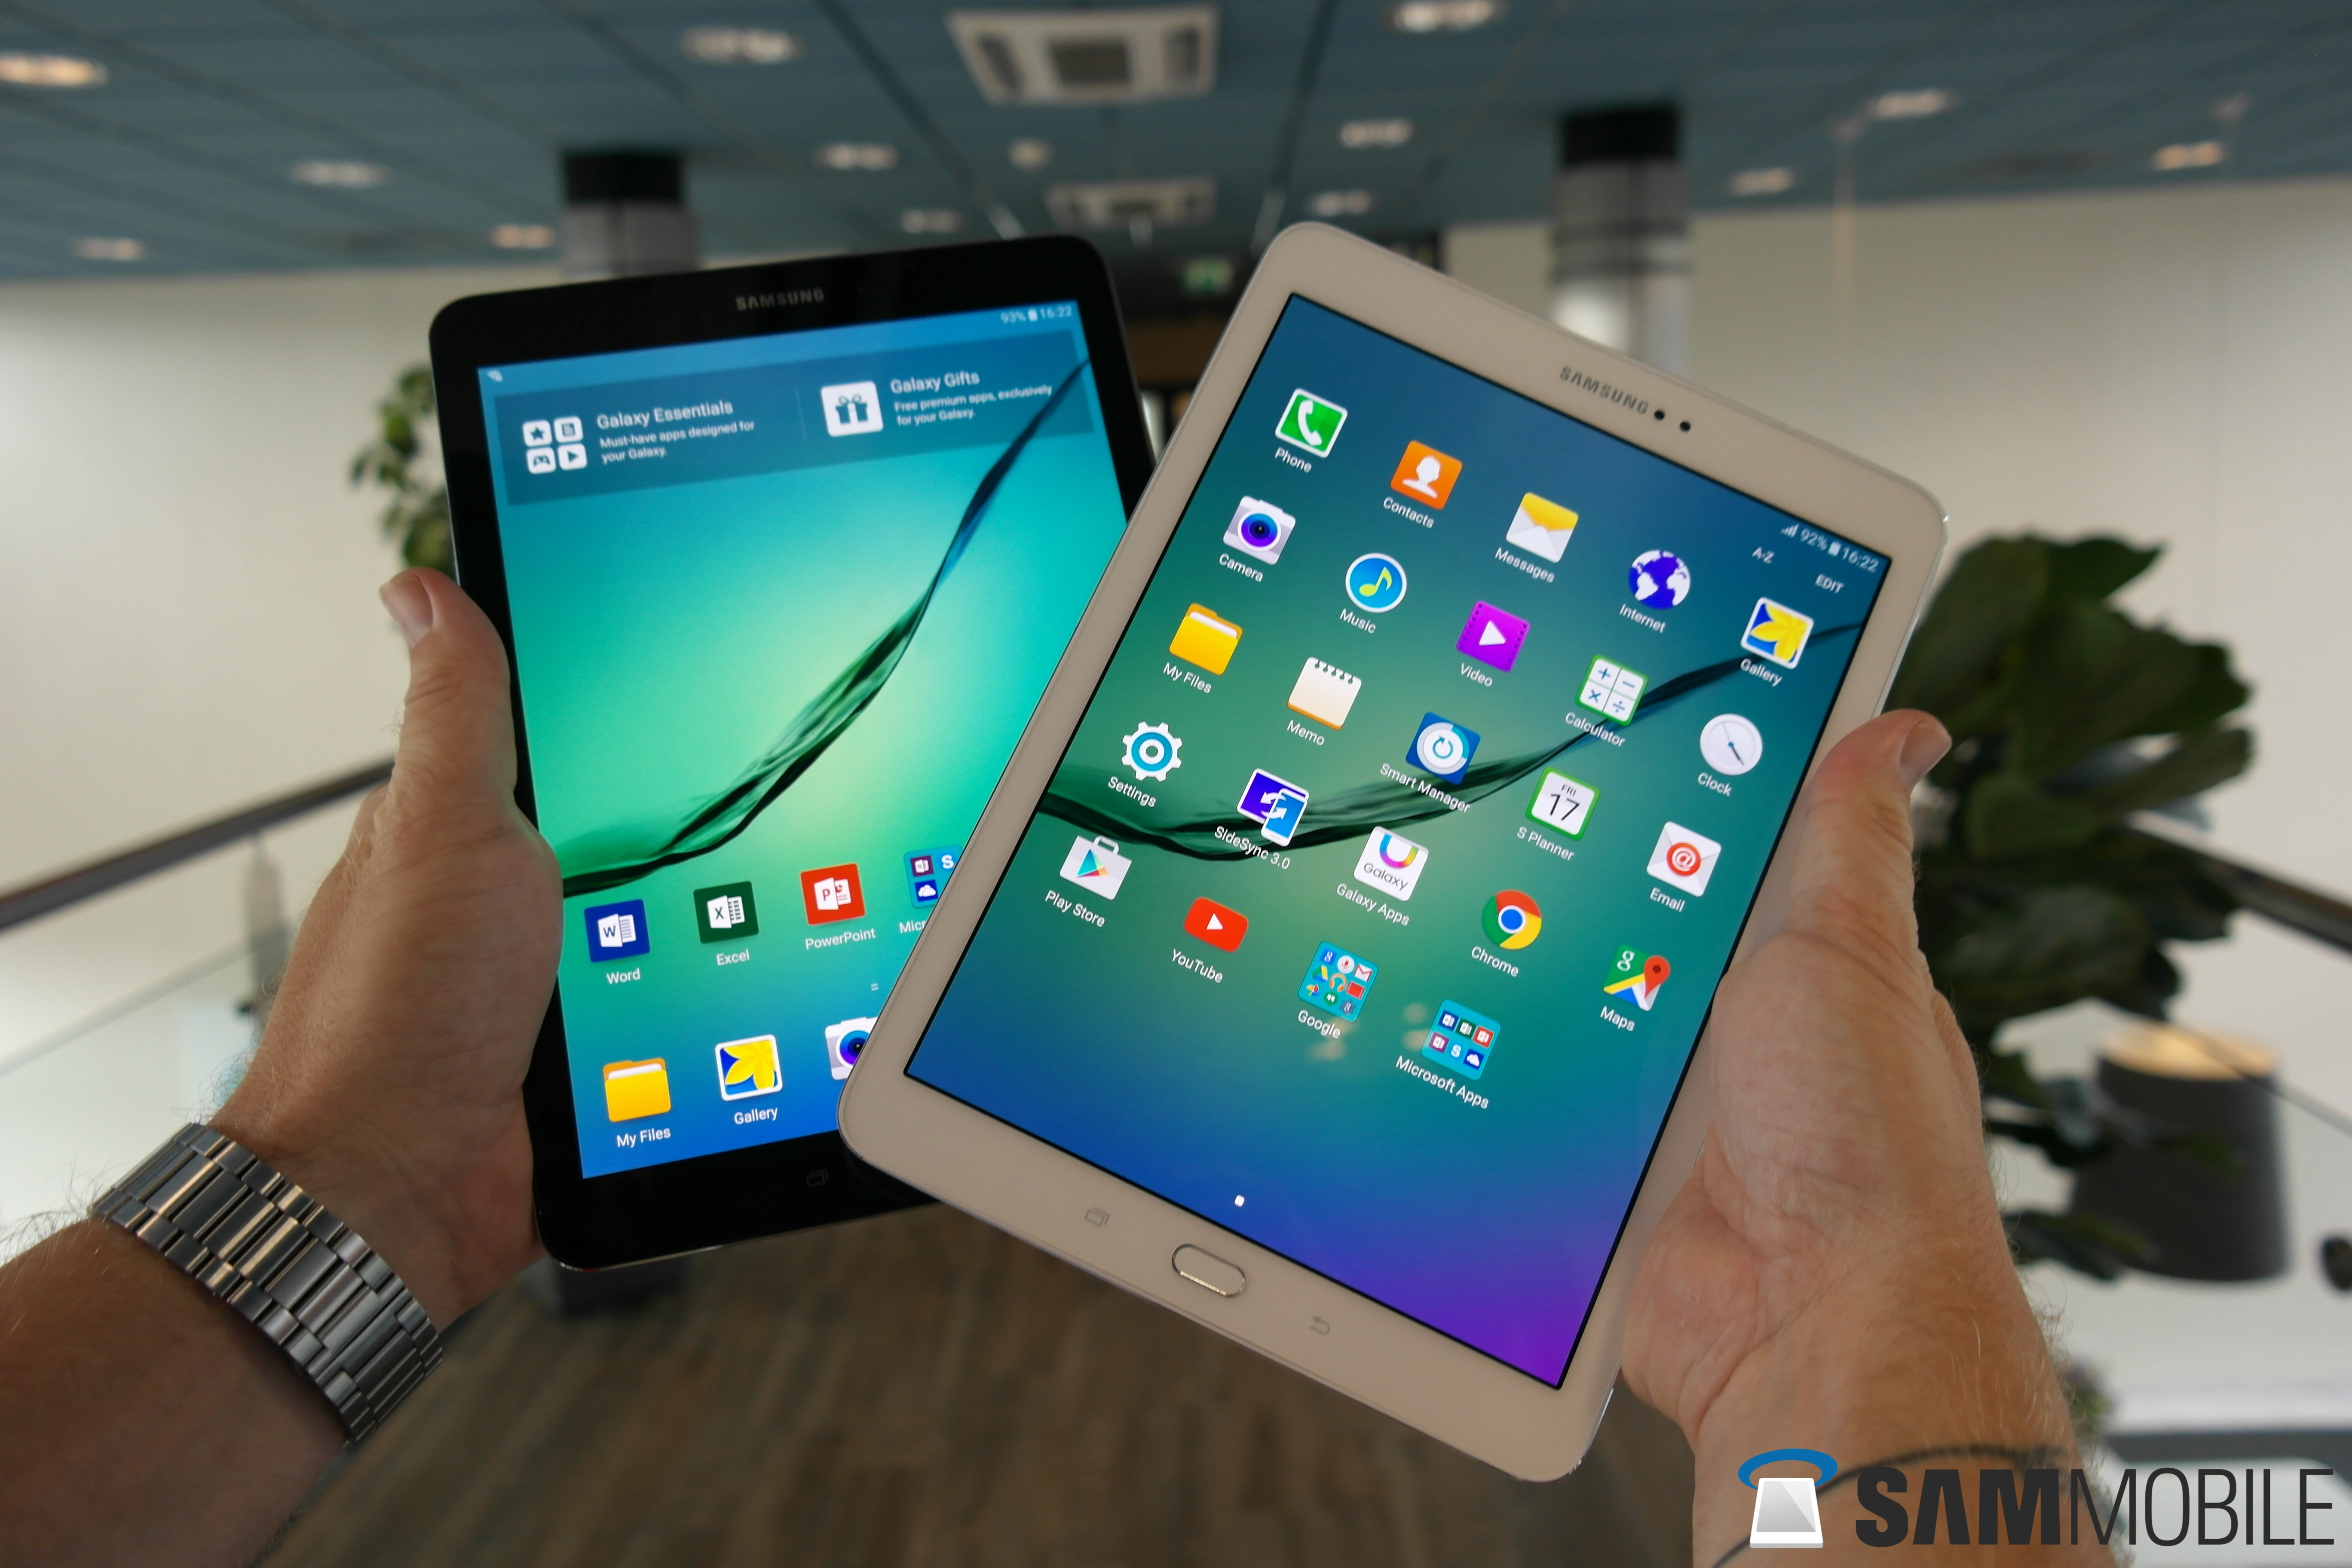 samsung galaxy tab s2 hands on sammobile sammobile. Black Bedroom Furniture Sets. Home Design Ideas